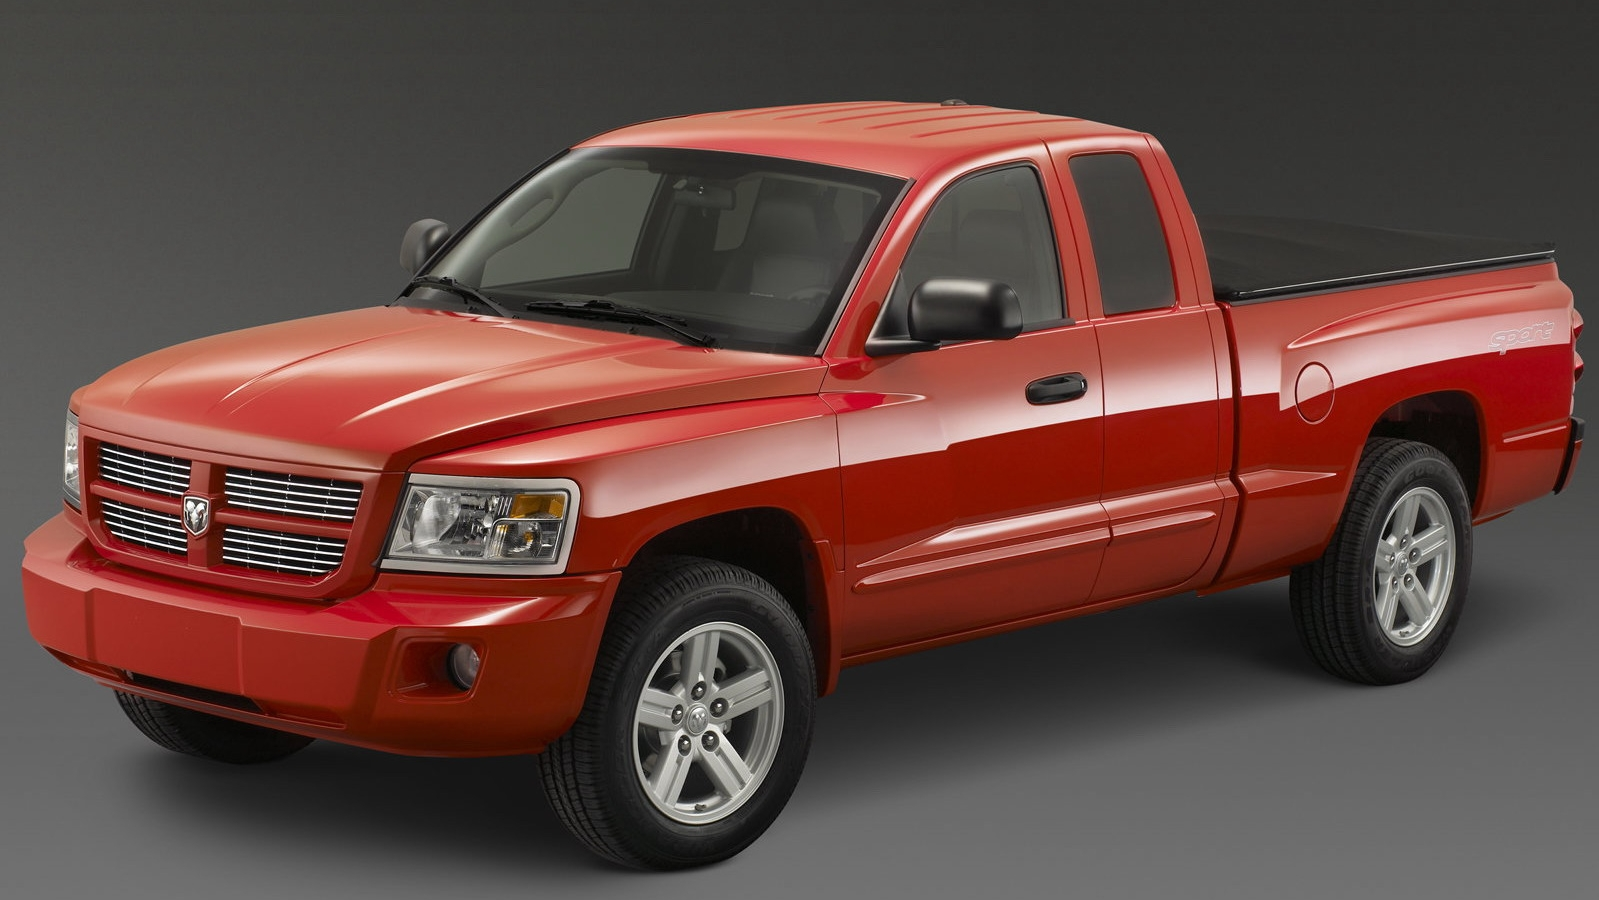 ram won 39 t offer a midsize truck because of cost picture top speed. Black Bedroom Furniture Sets. Home Design Ideas